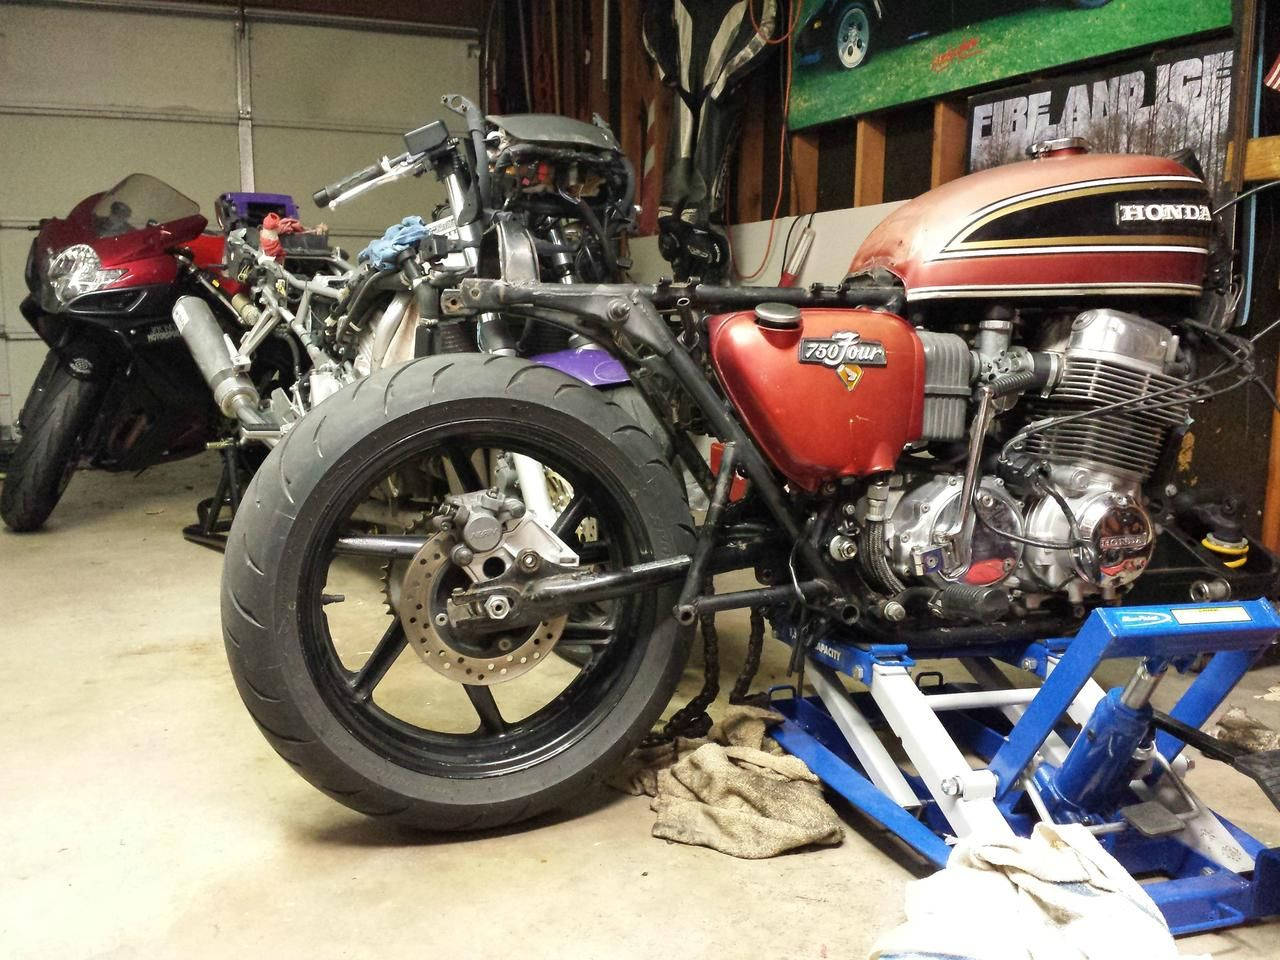 1971 CB750 with GSXR Front End | Motorcycles | Cb750